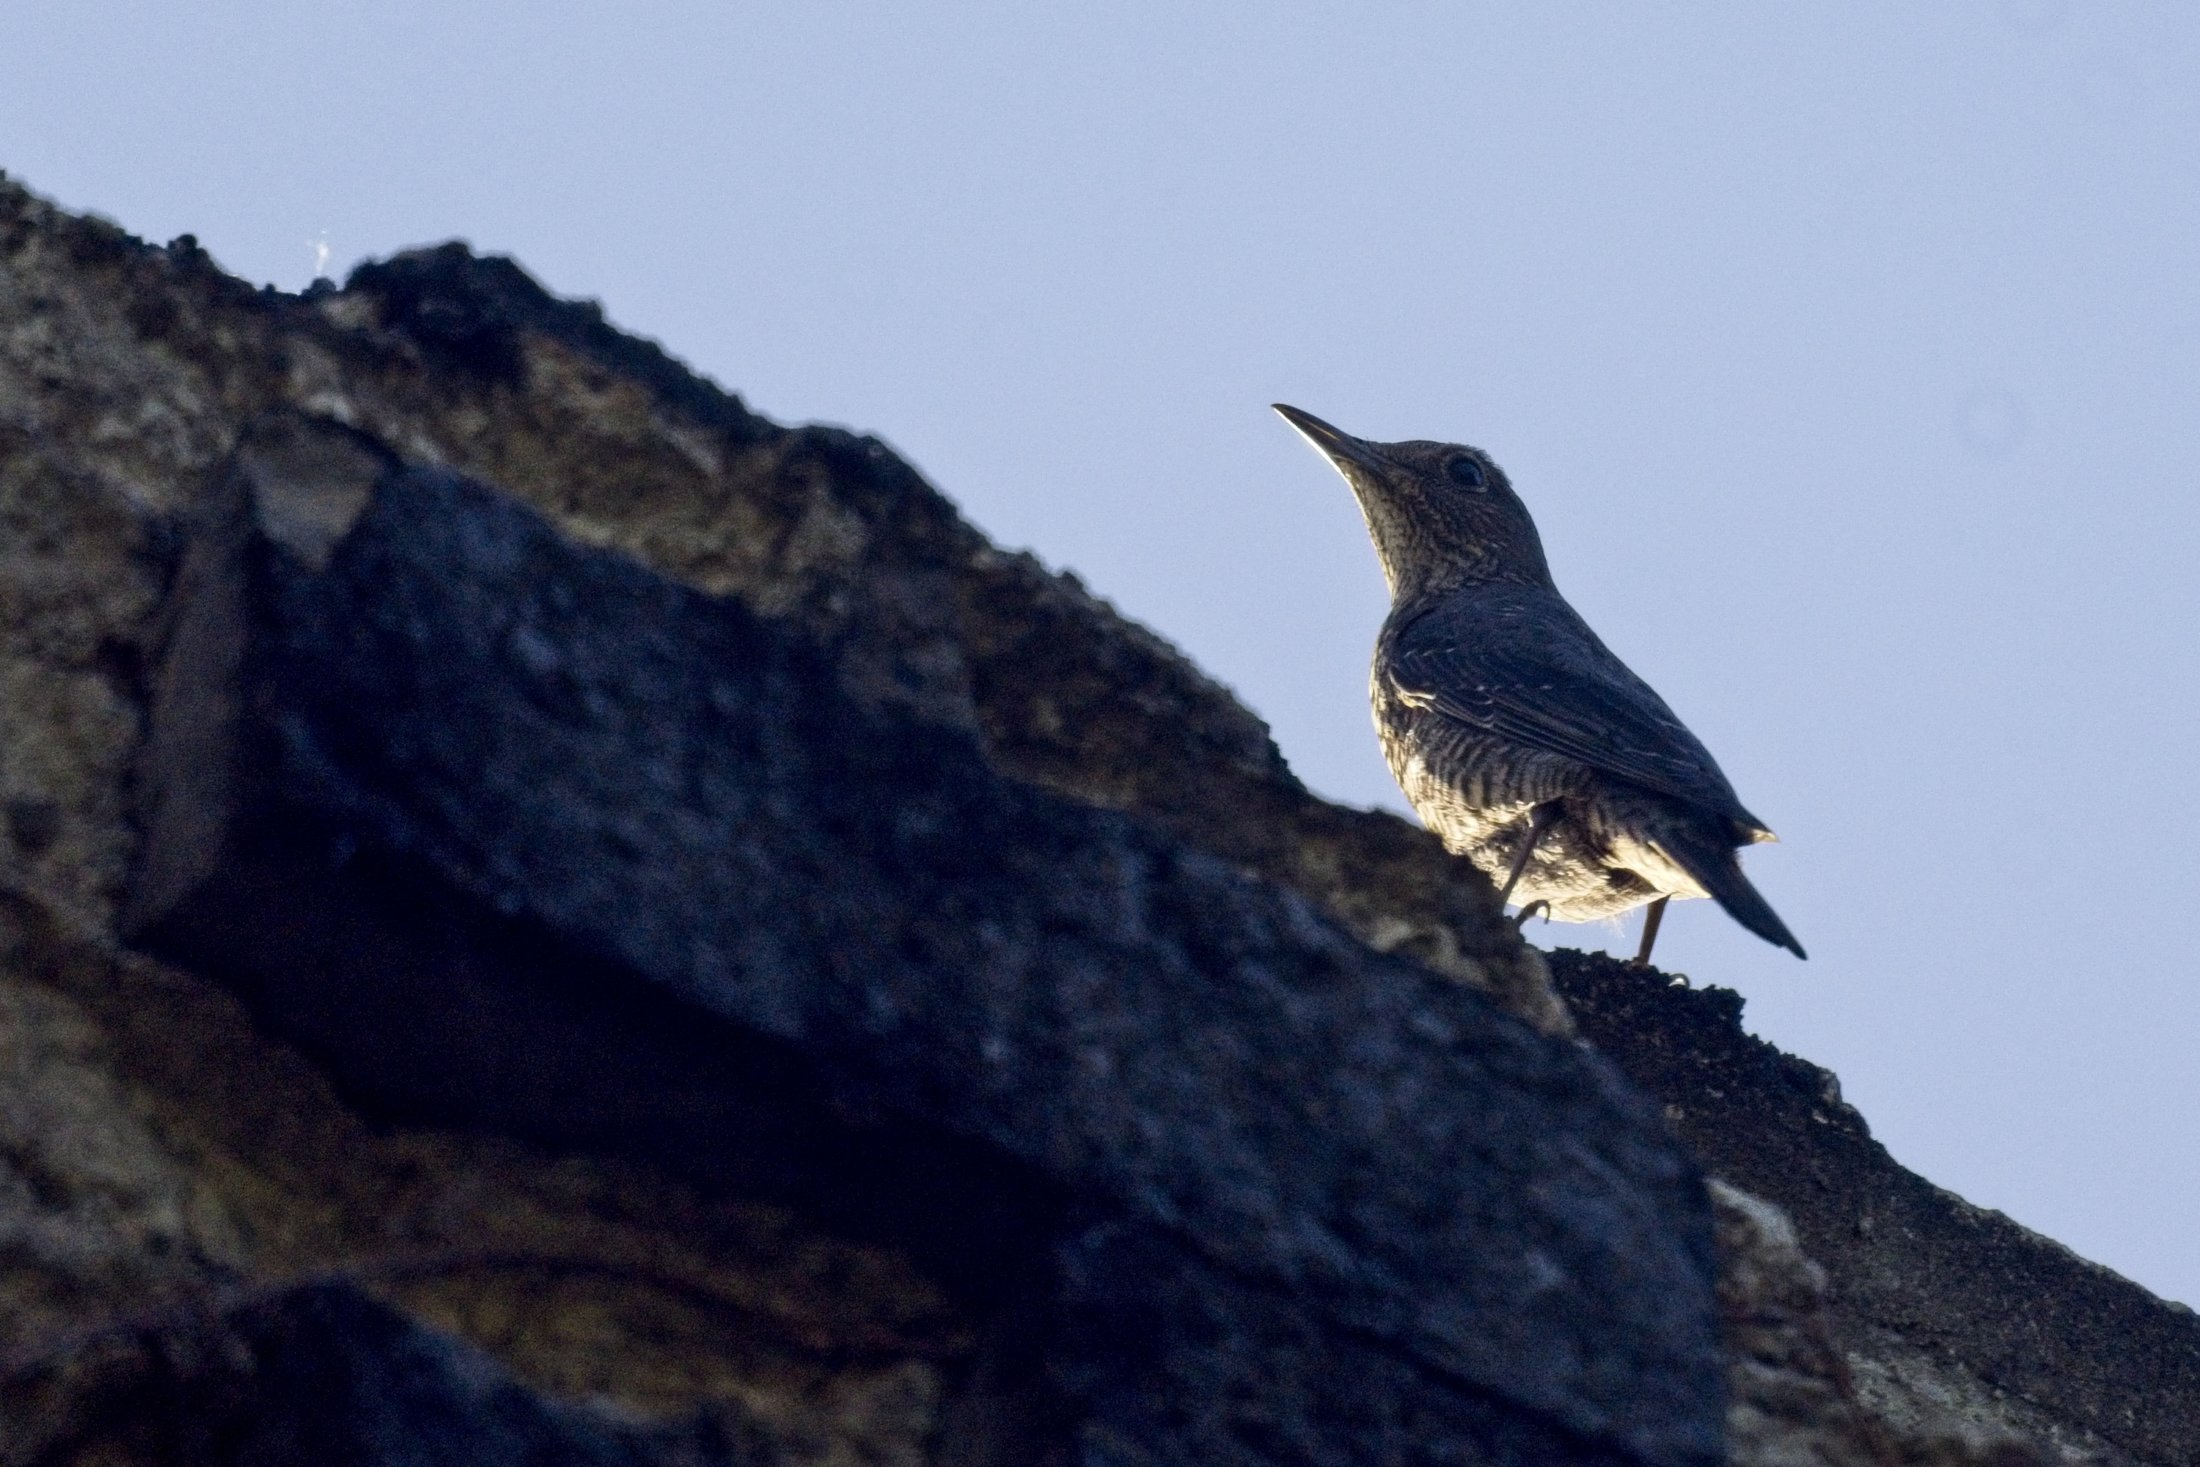 Blue Rock-Thrush - Monticola solitarius, female